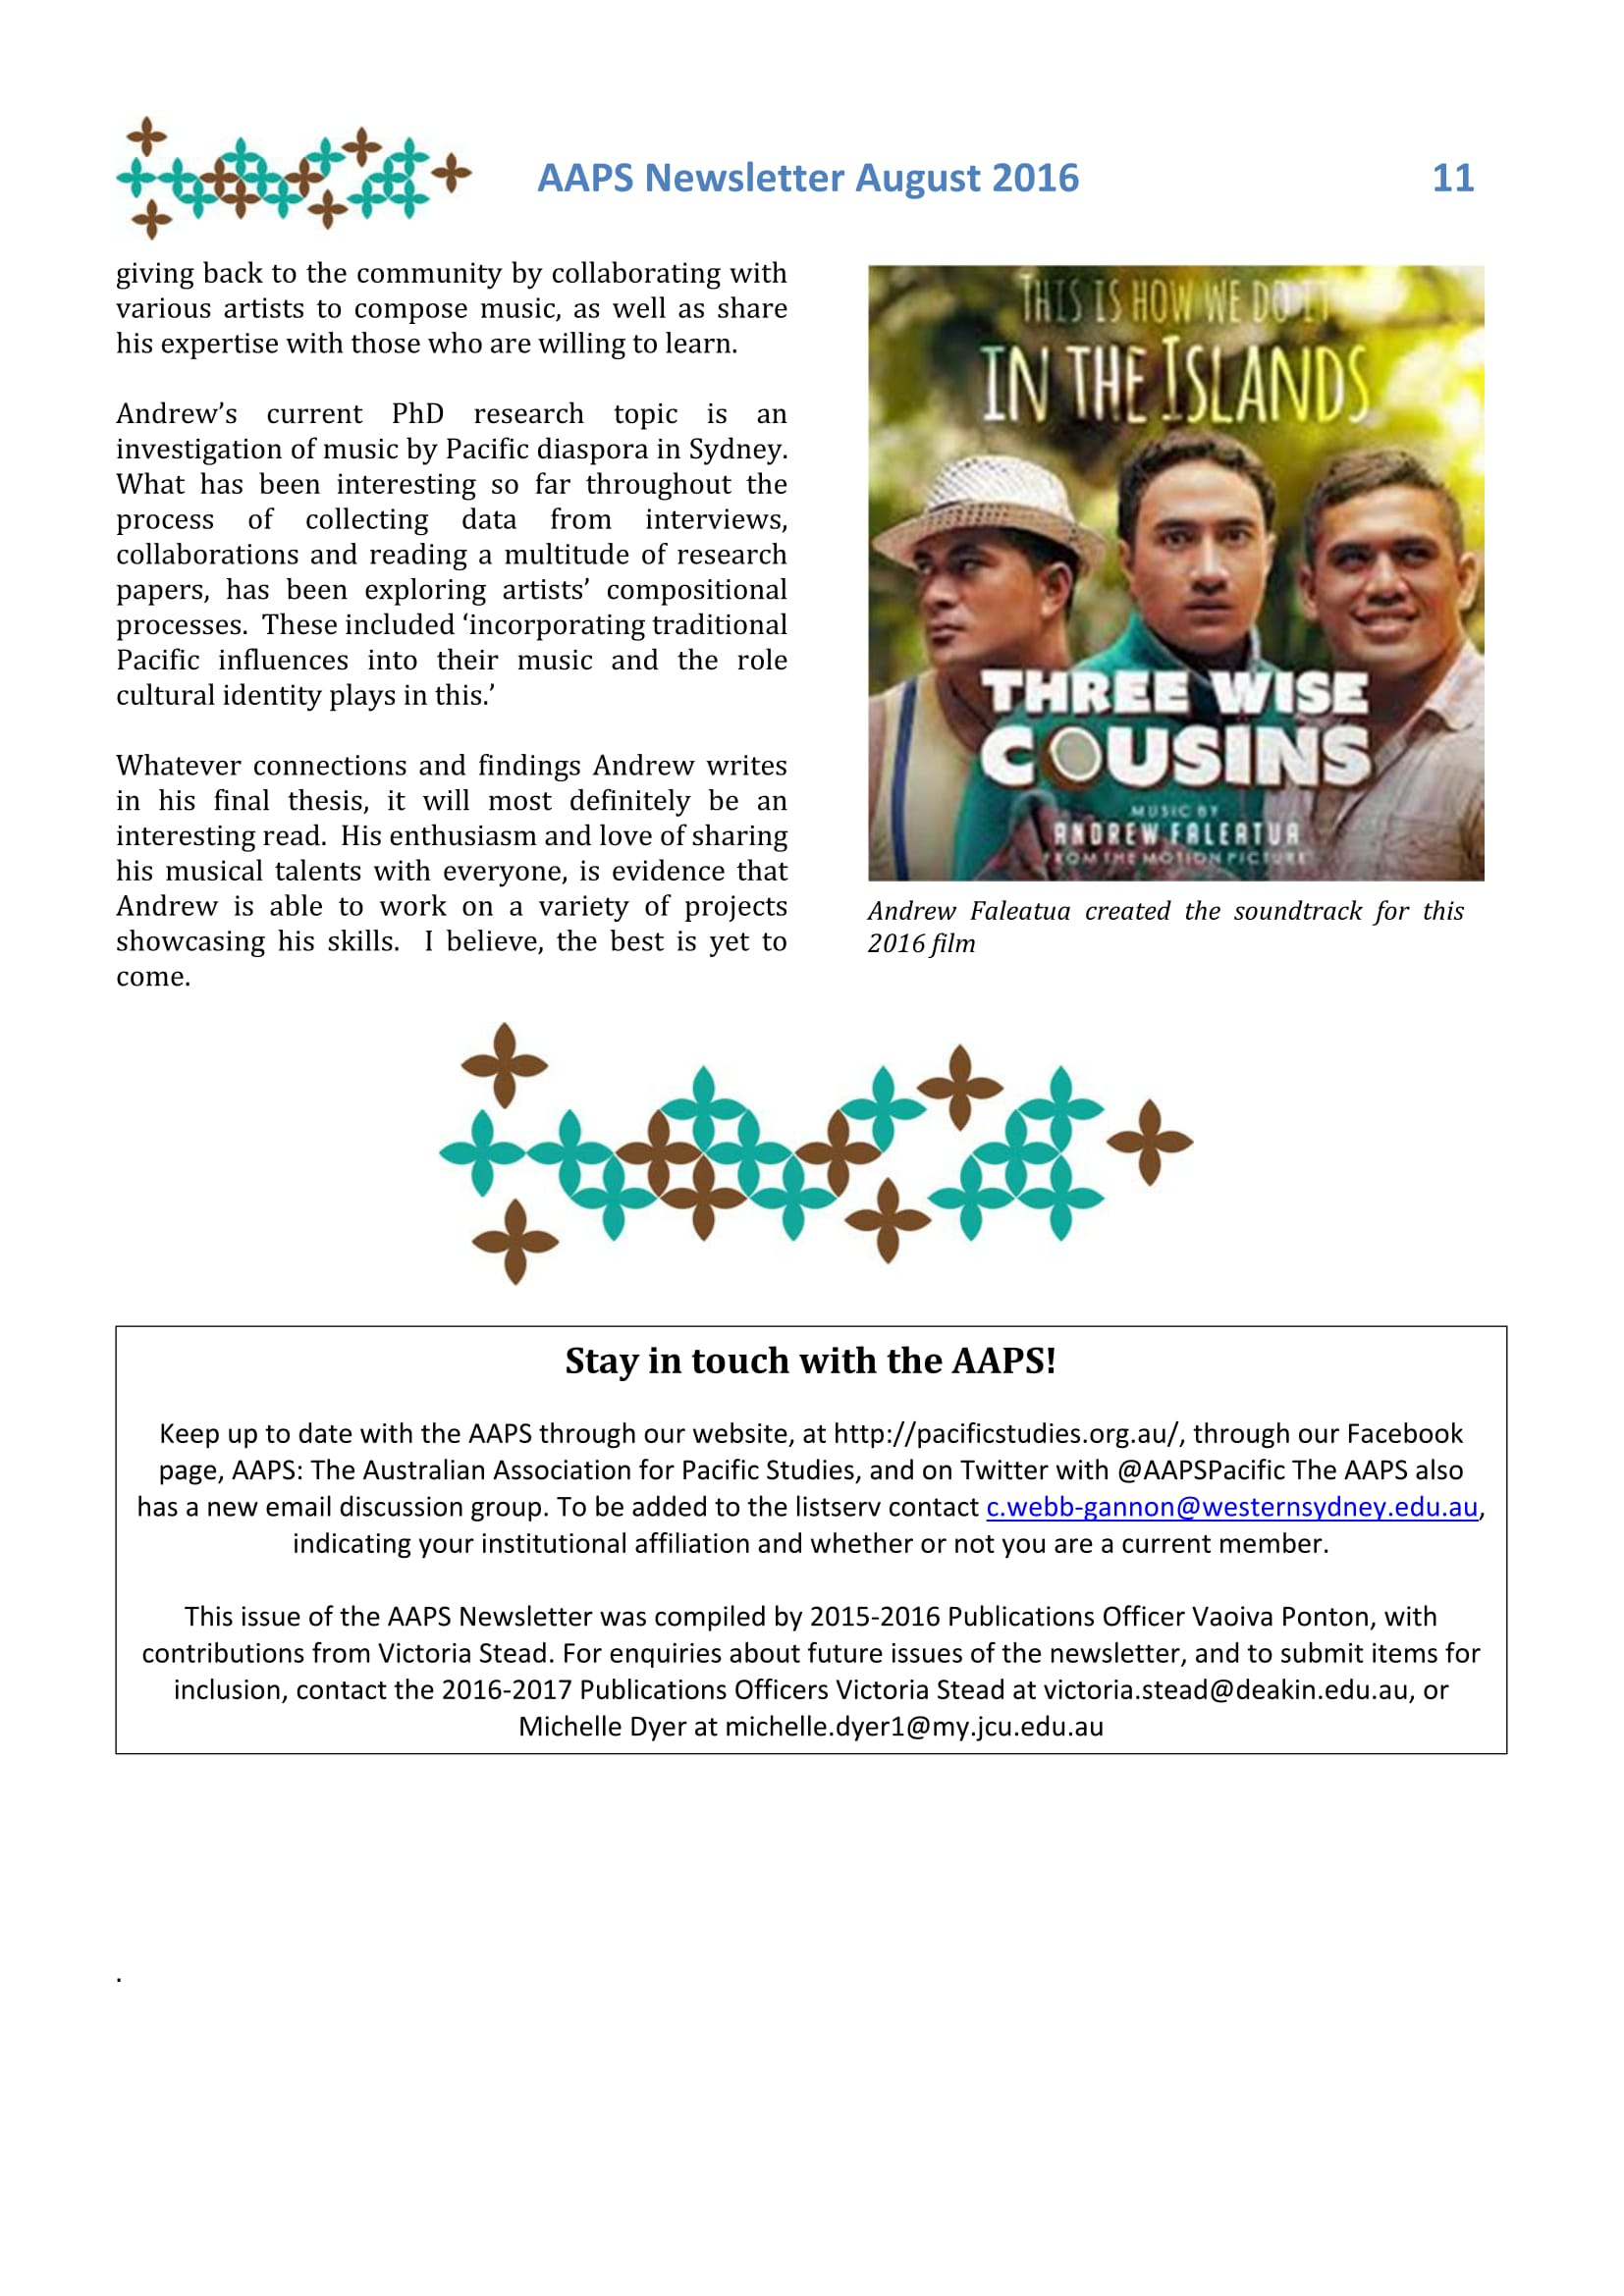 AAPS newsletter August 2016-11